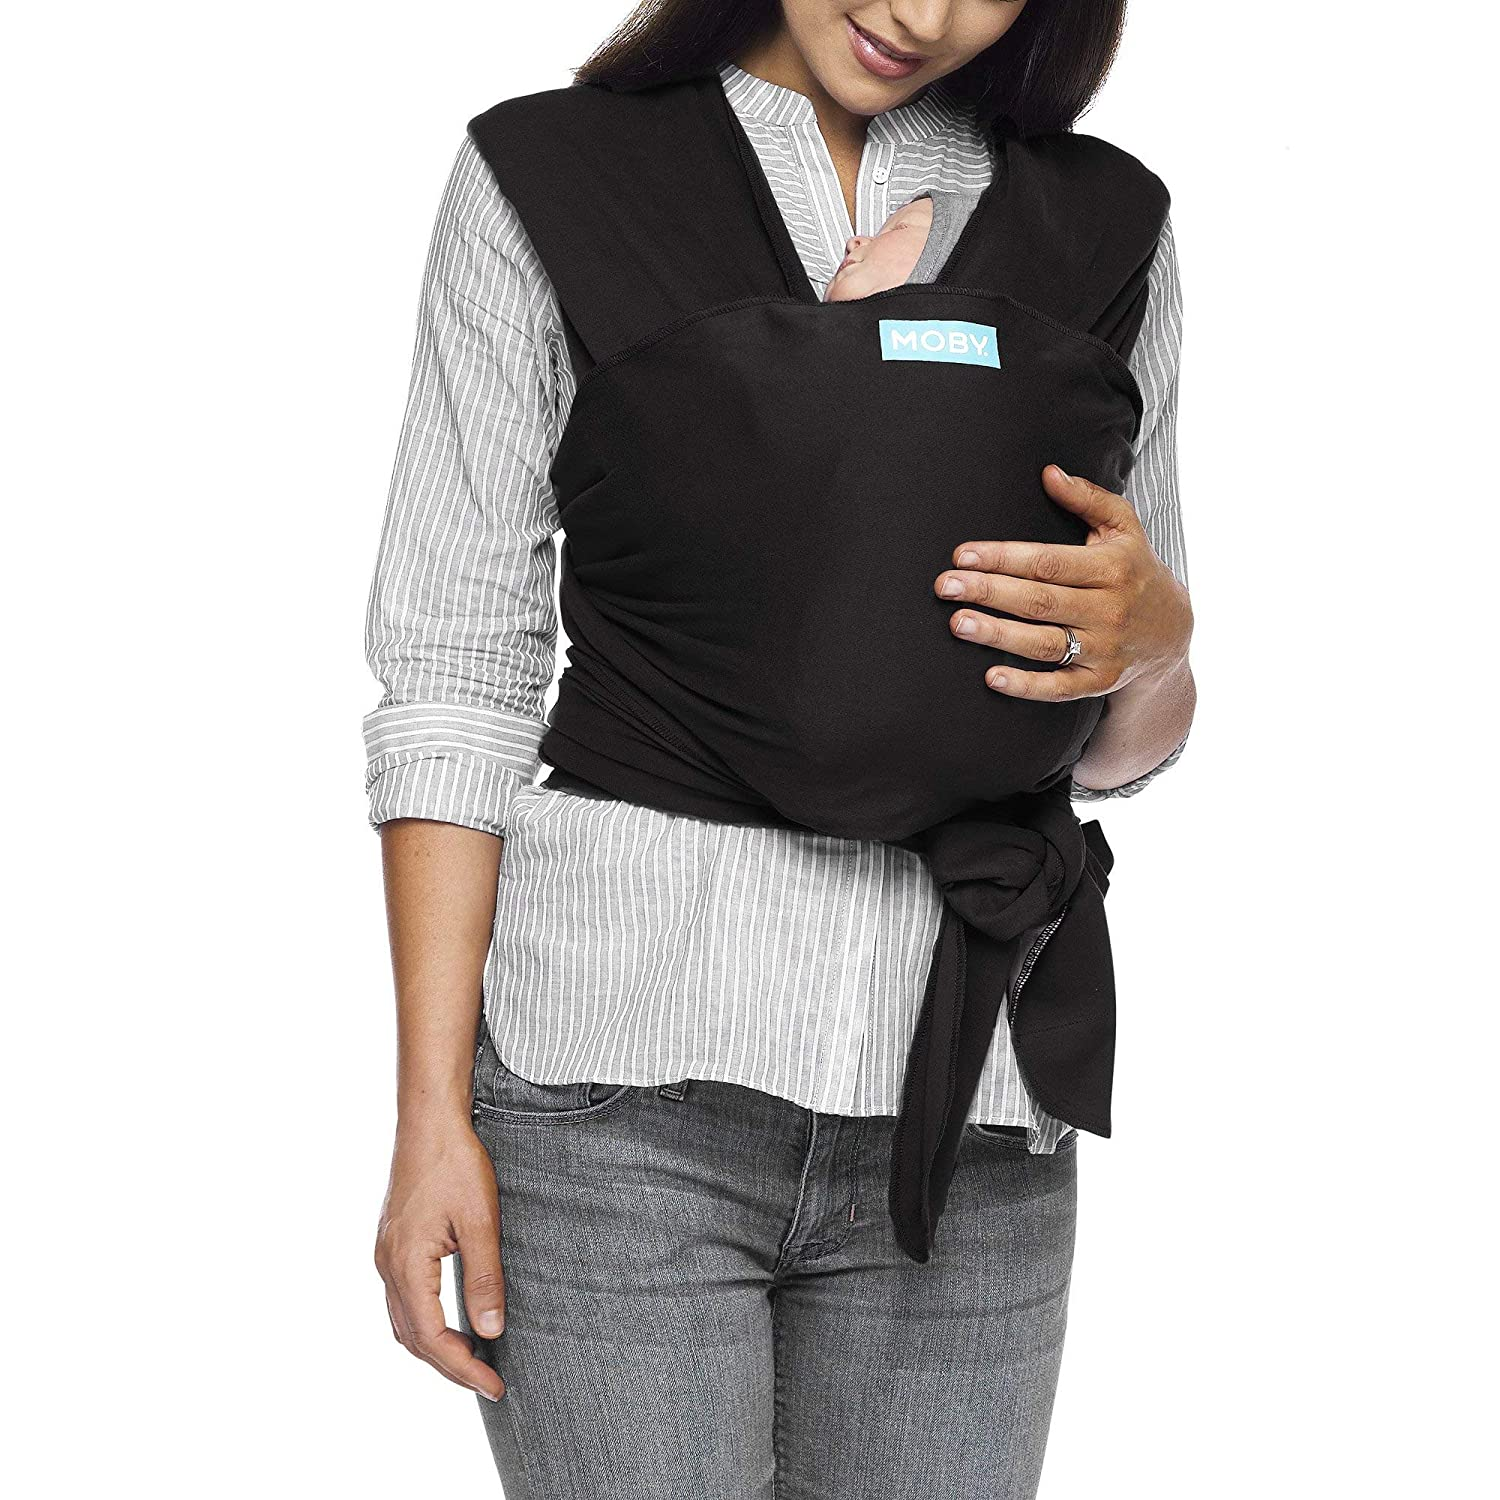 Baby Wearing Wrap for Parents On The Go - Baby Carrier for Newborn